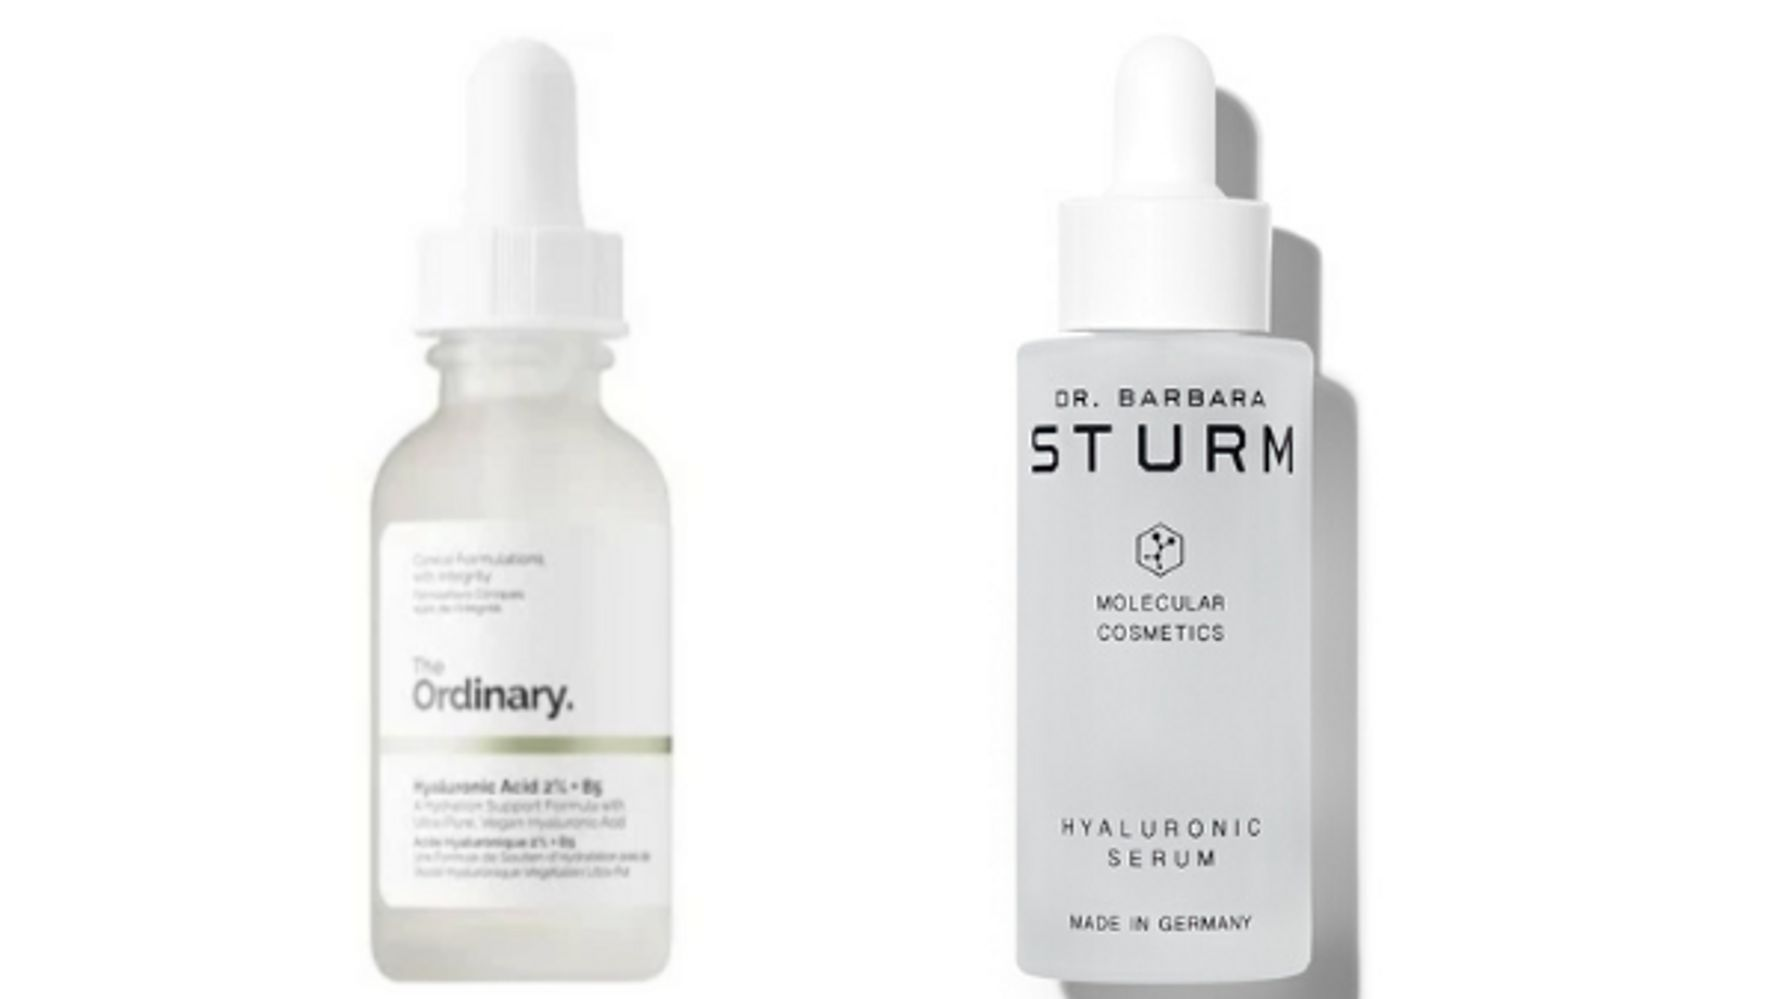 One Of These Hyaluronic Acid Serums Is $7, The Other Is $300. What's The Difference?